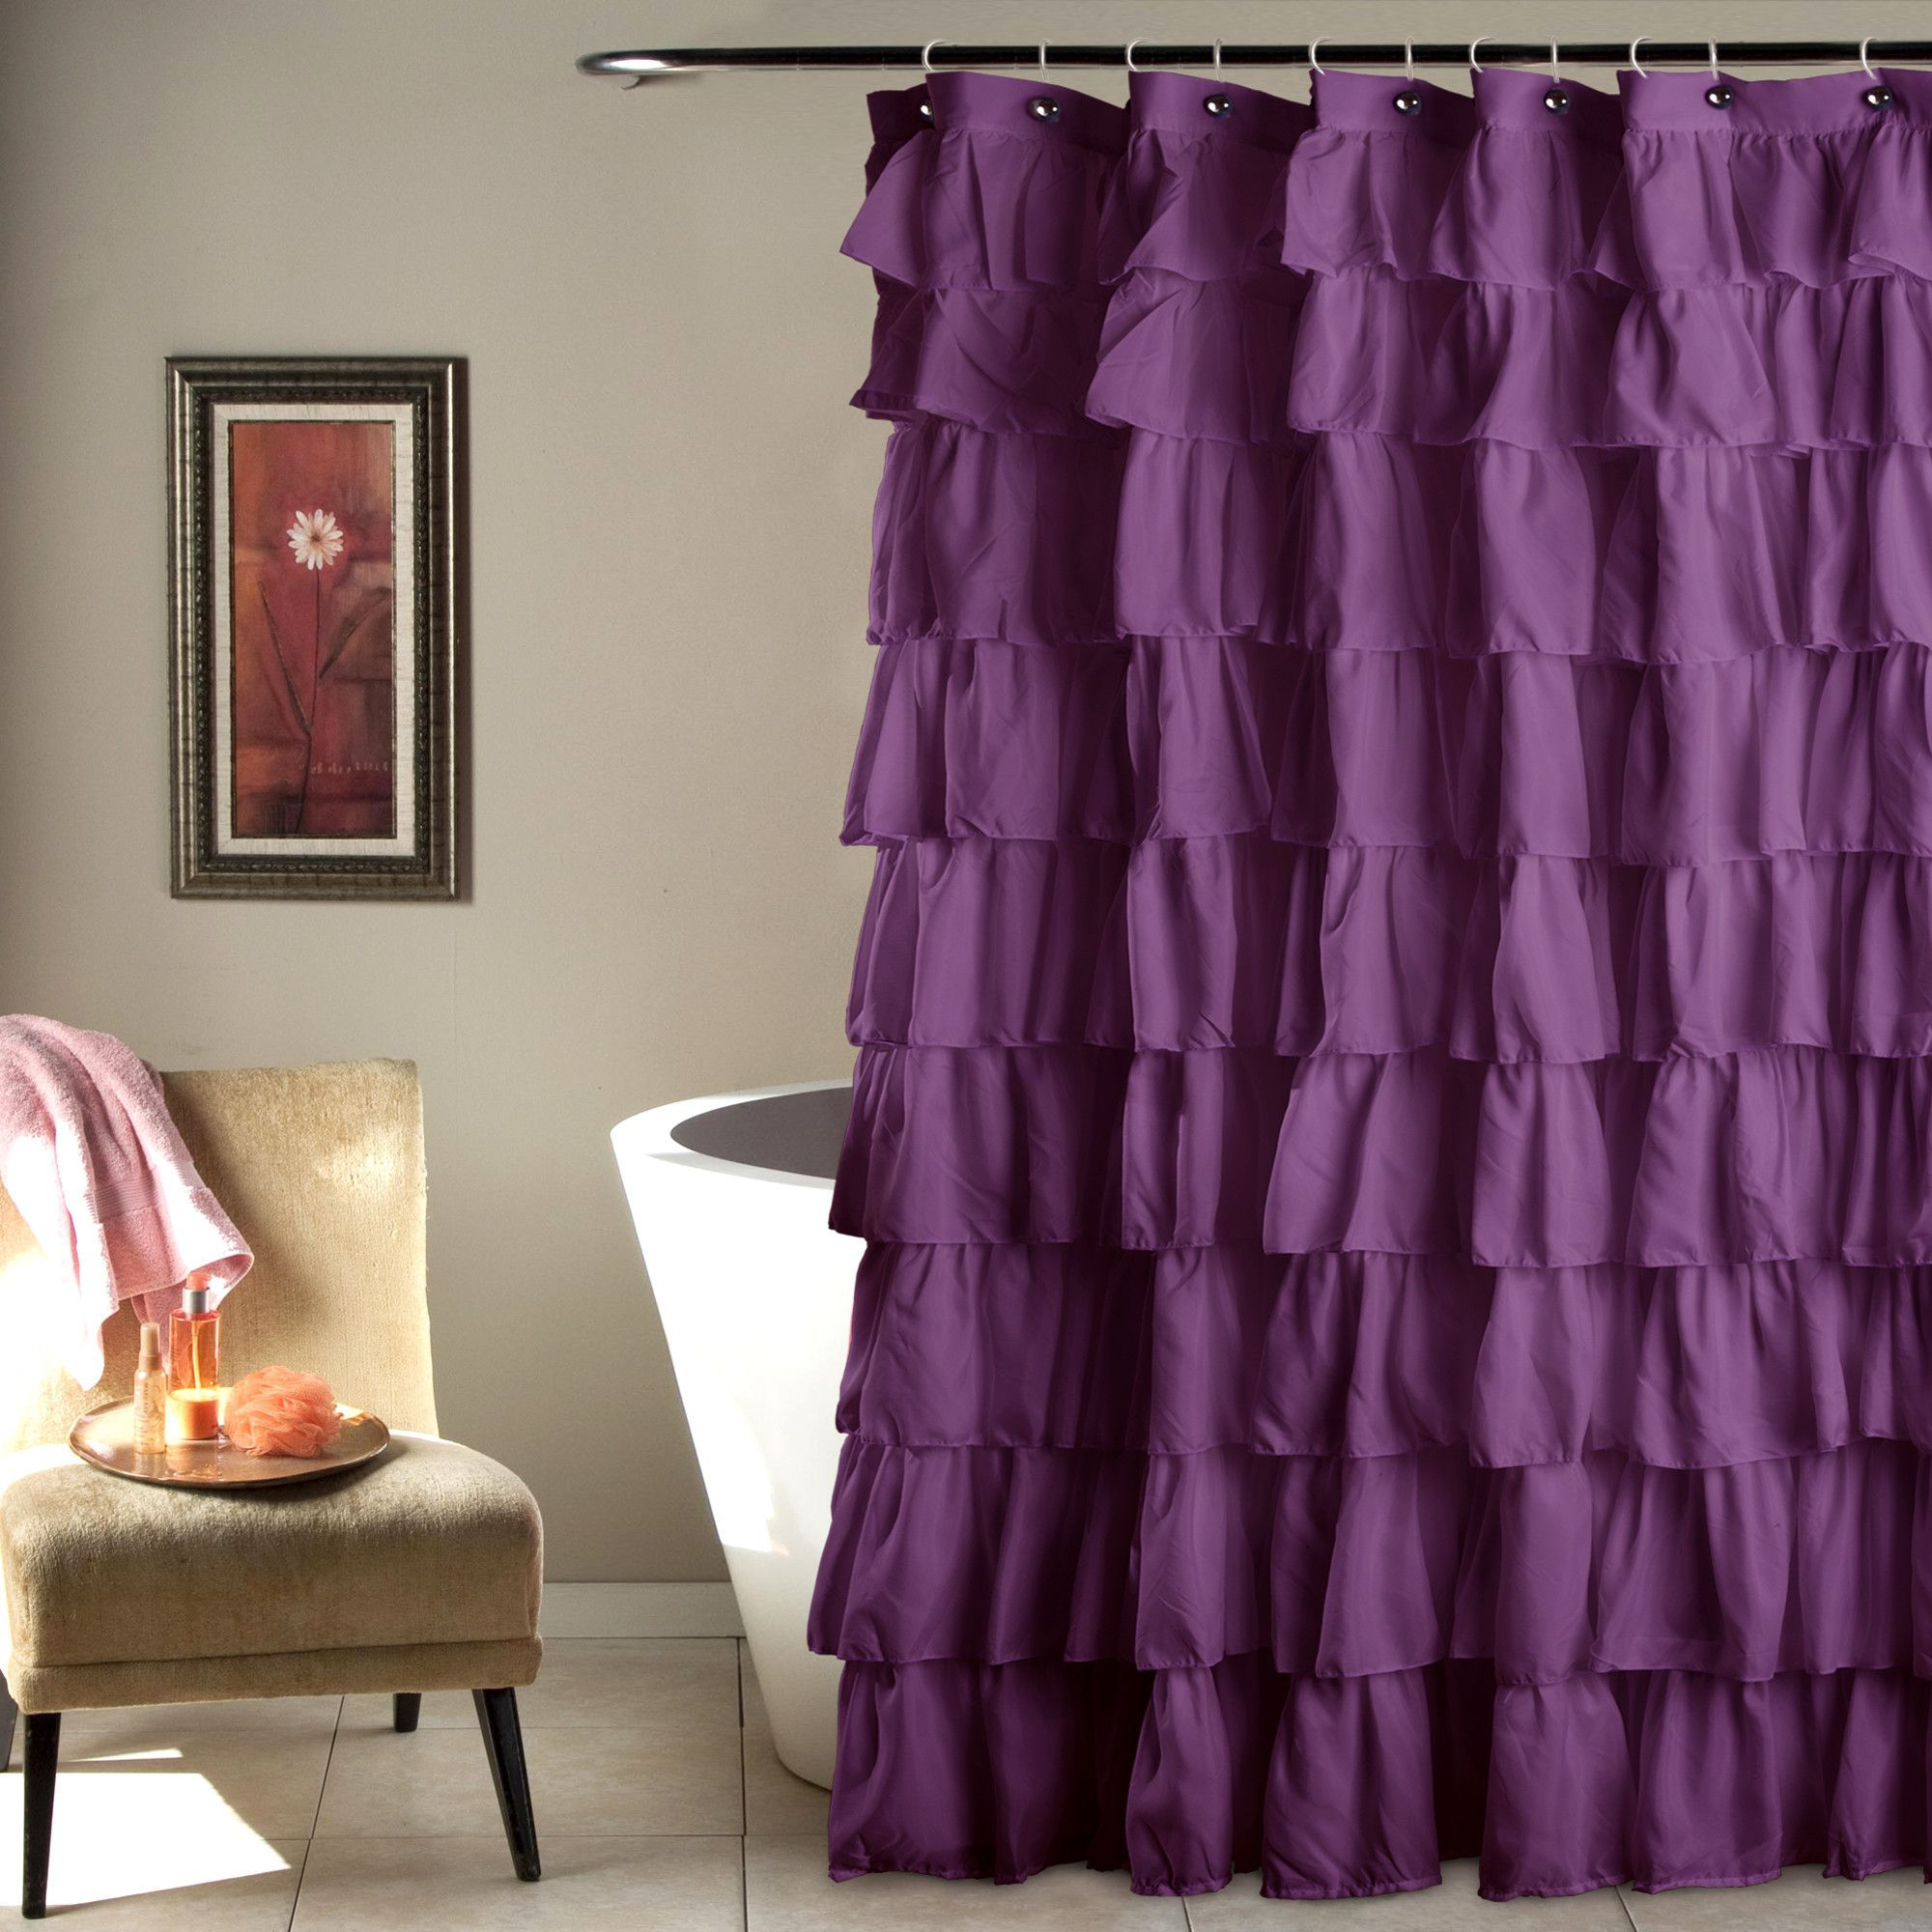 Ruffle shower curtain ruffle shower curtains apartments and room